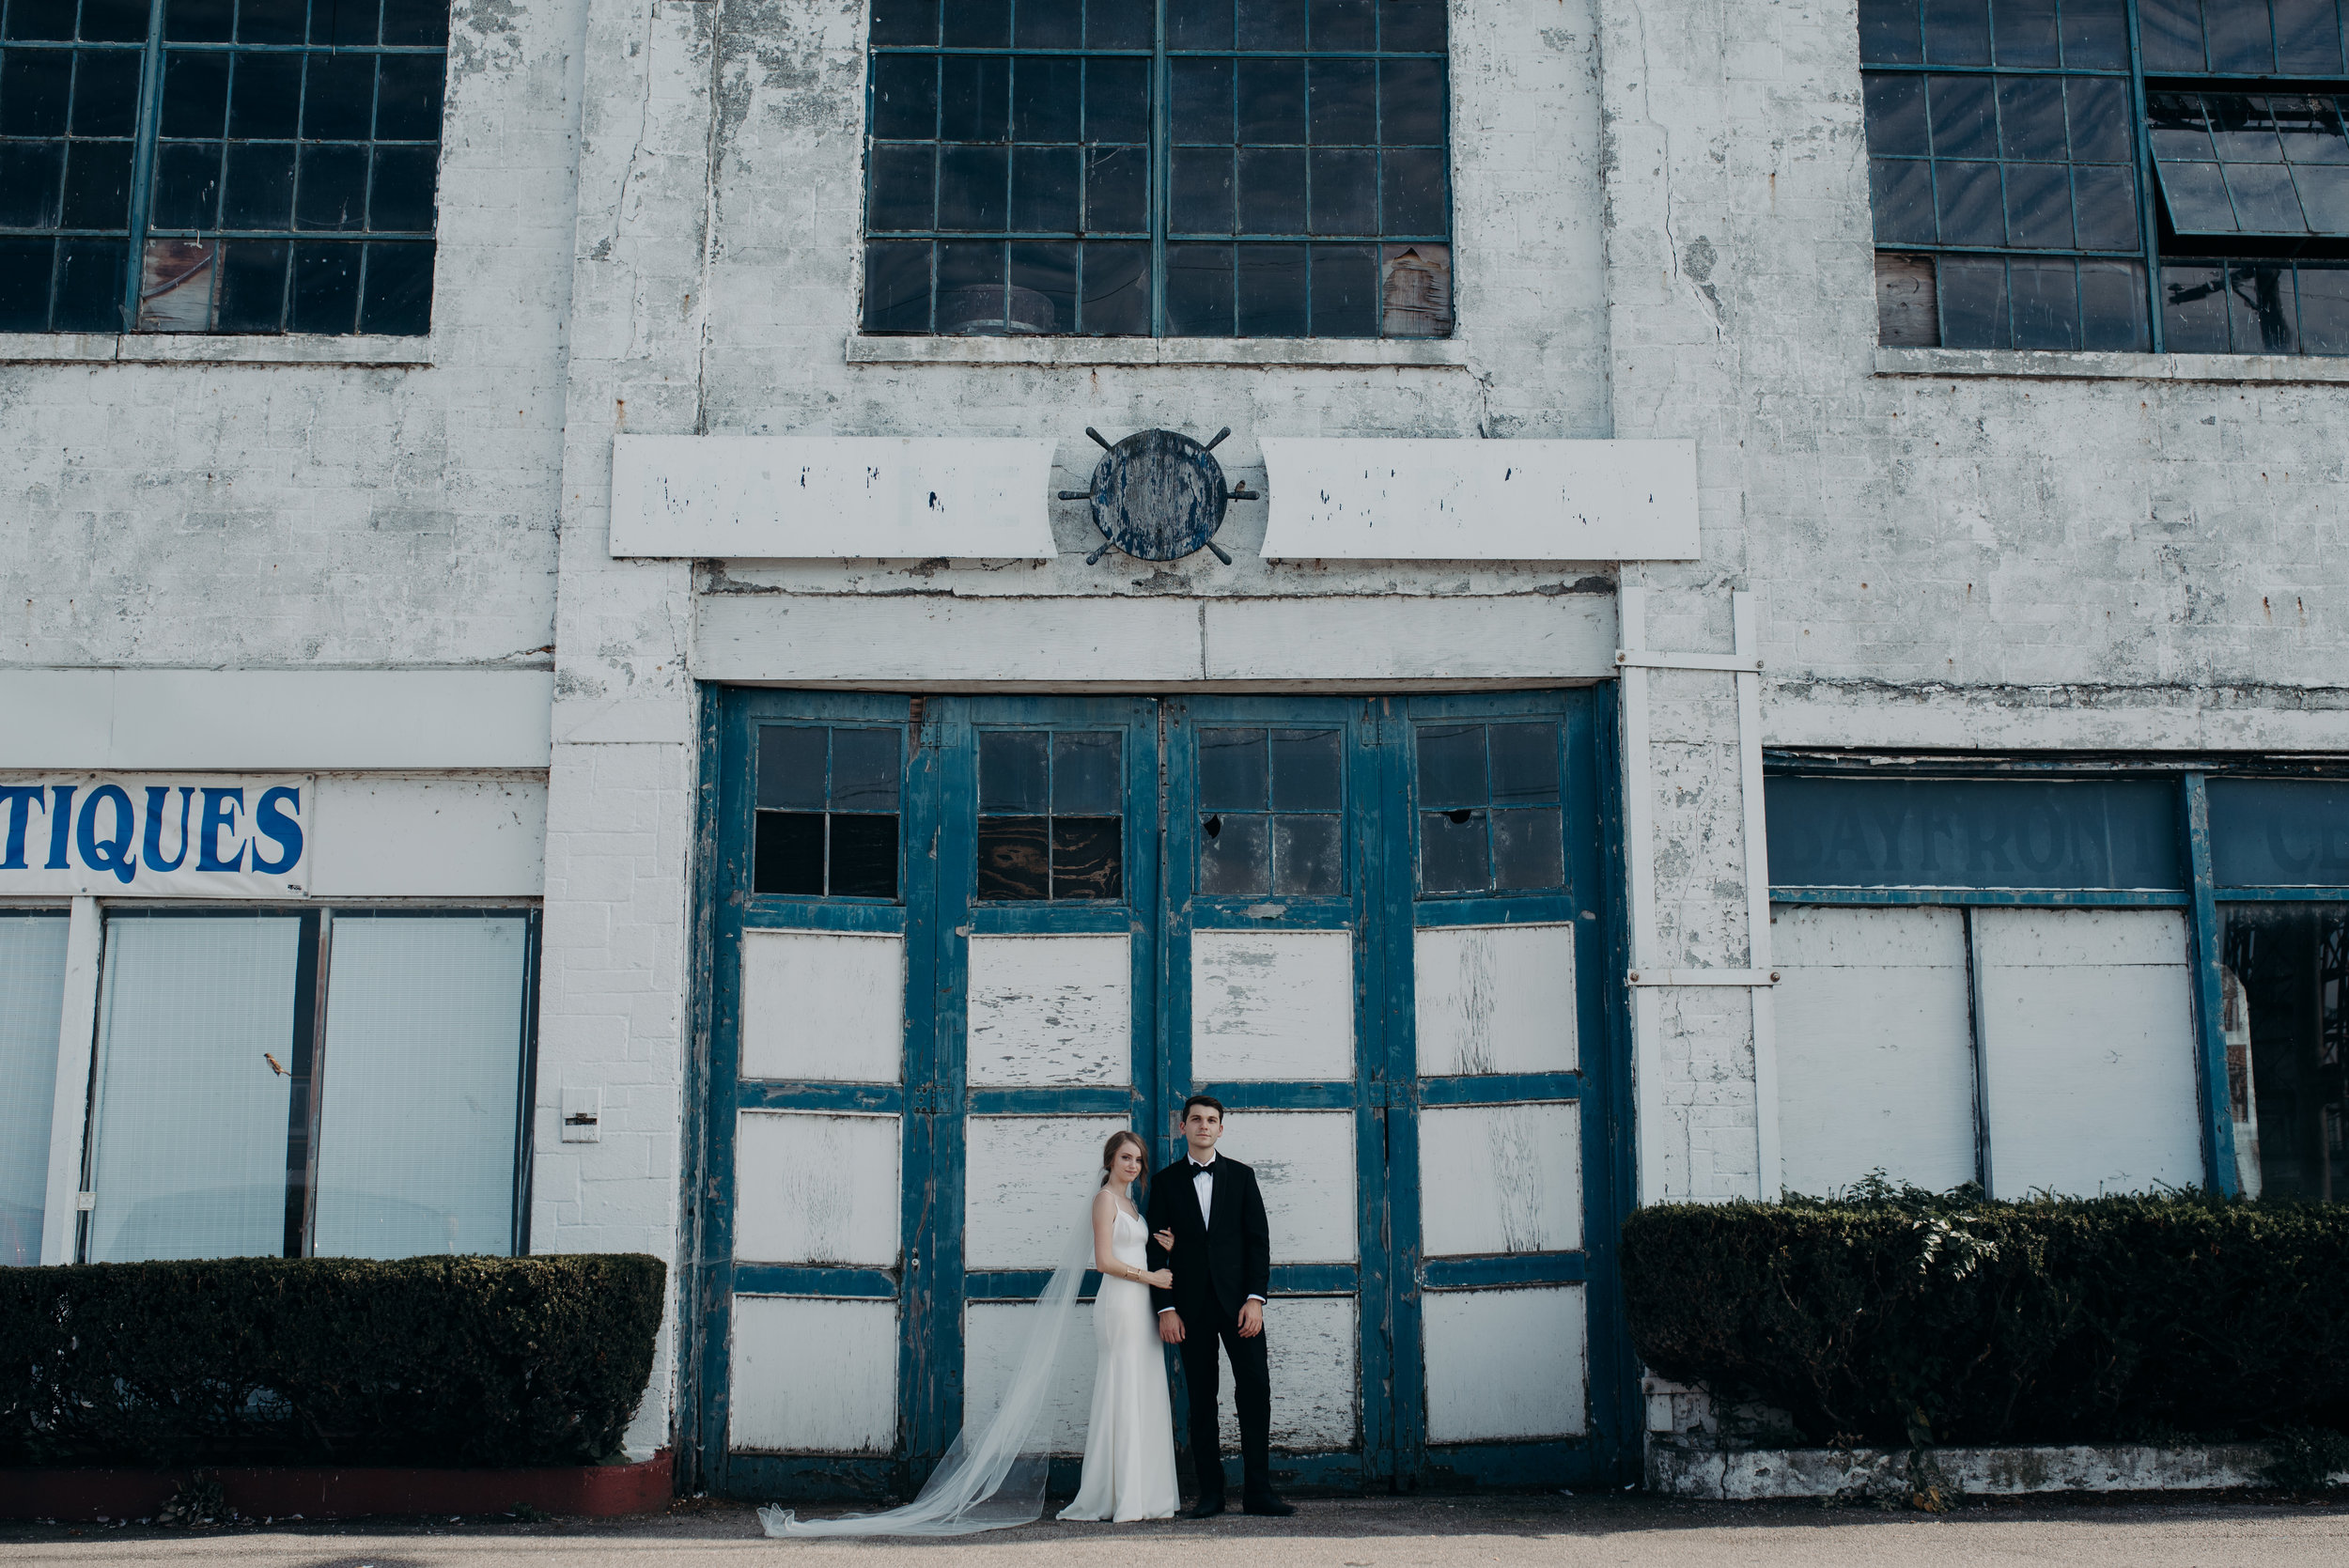 jake-and-kendra-orlando-destination-wedding-photographer-291.jpg